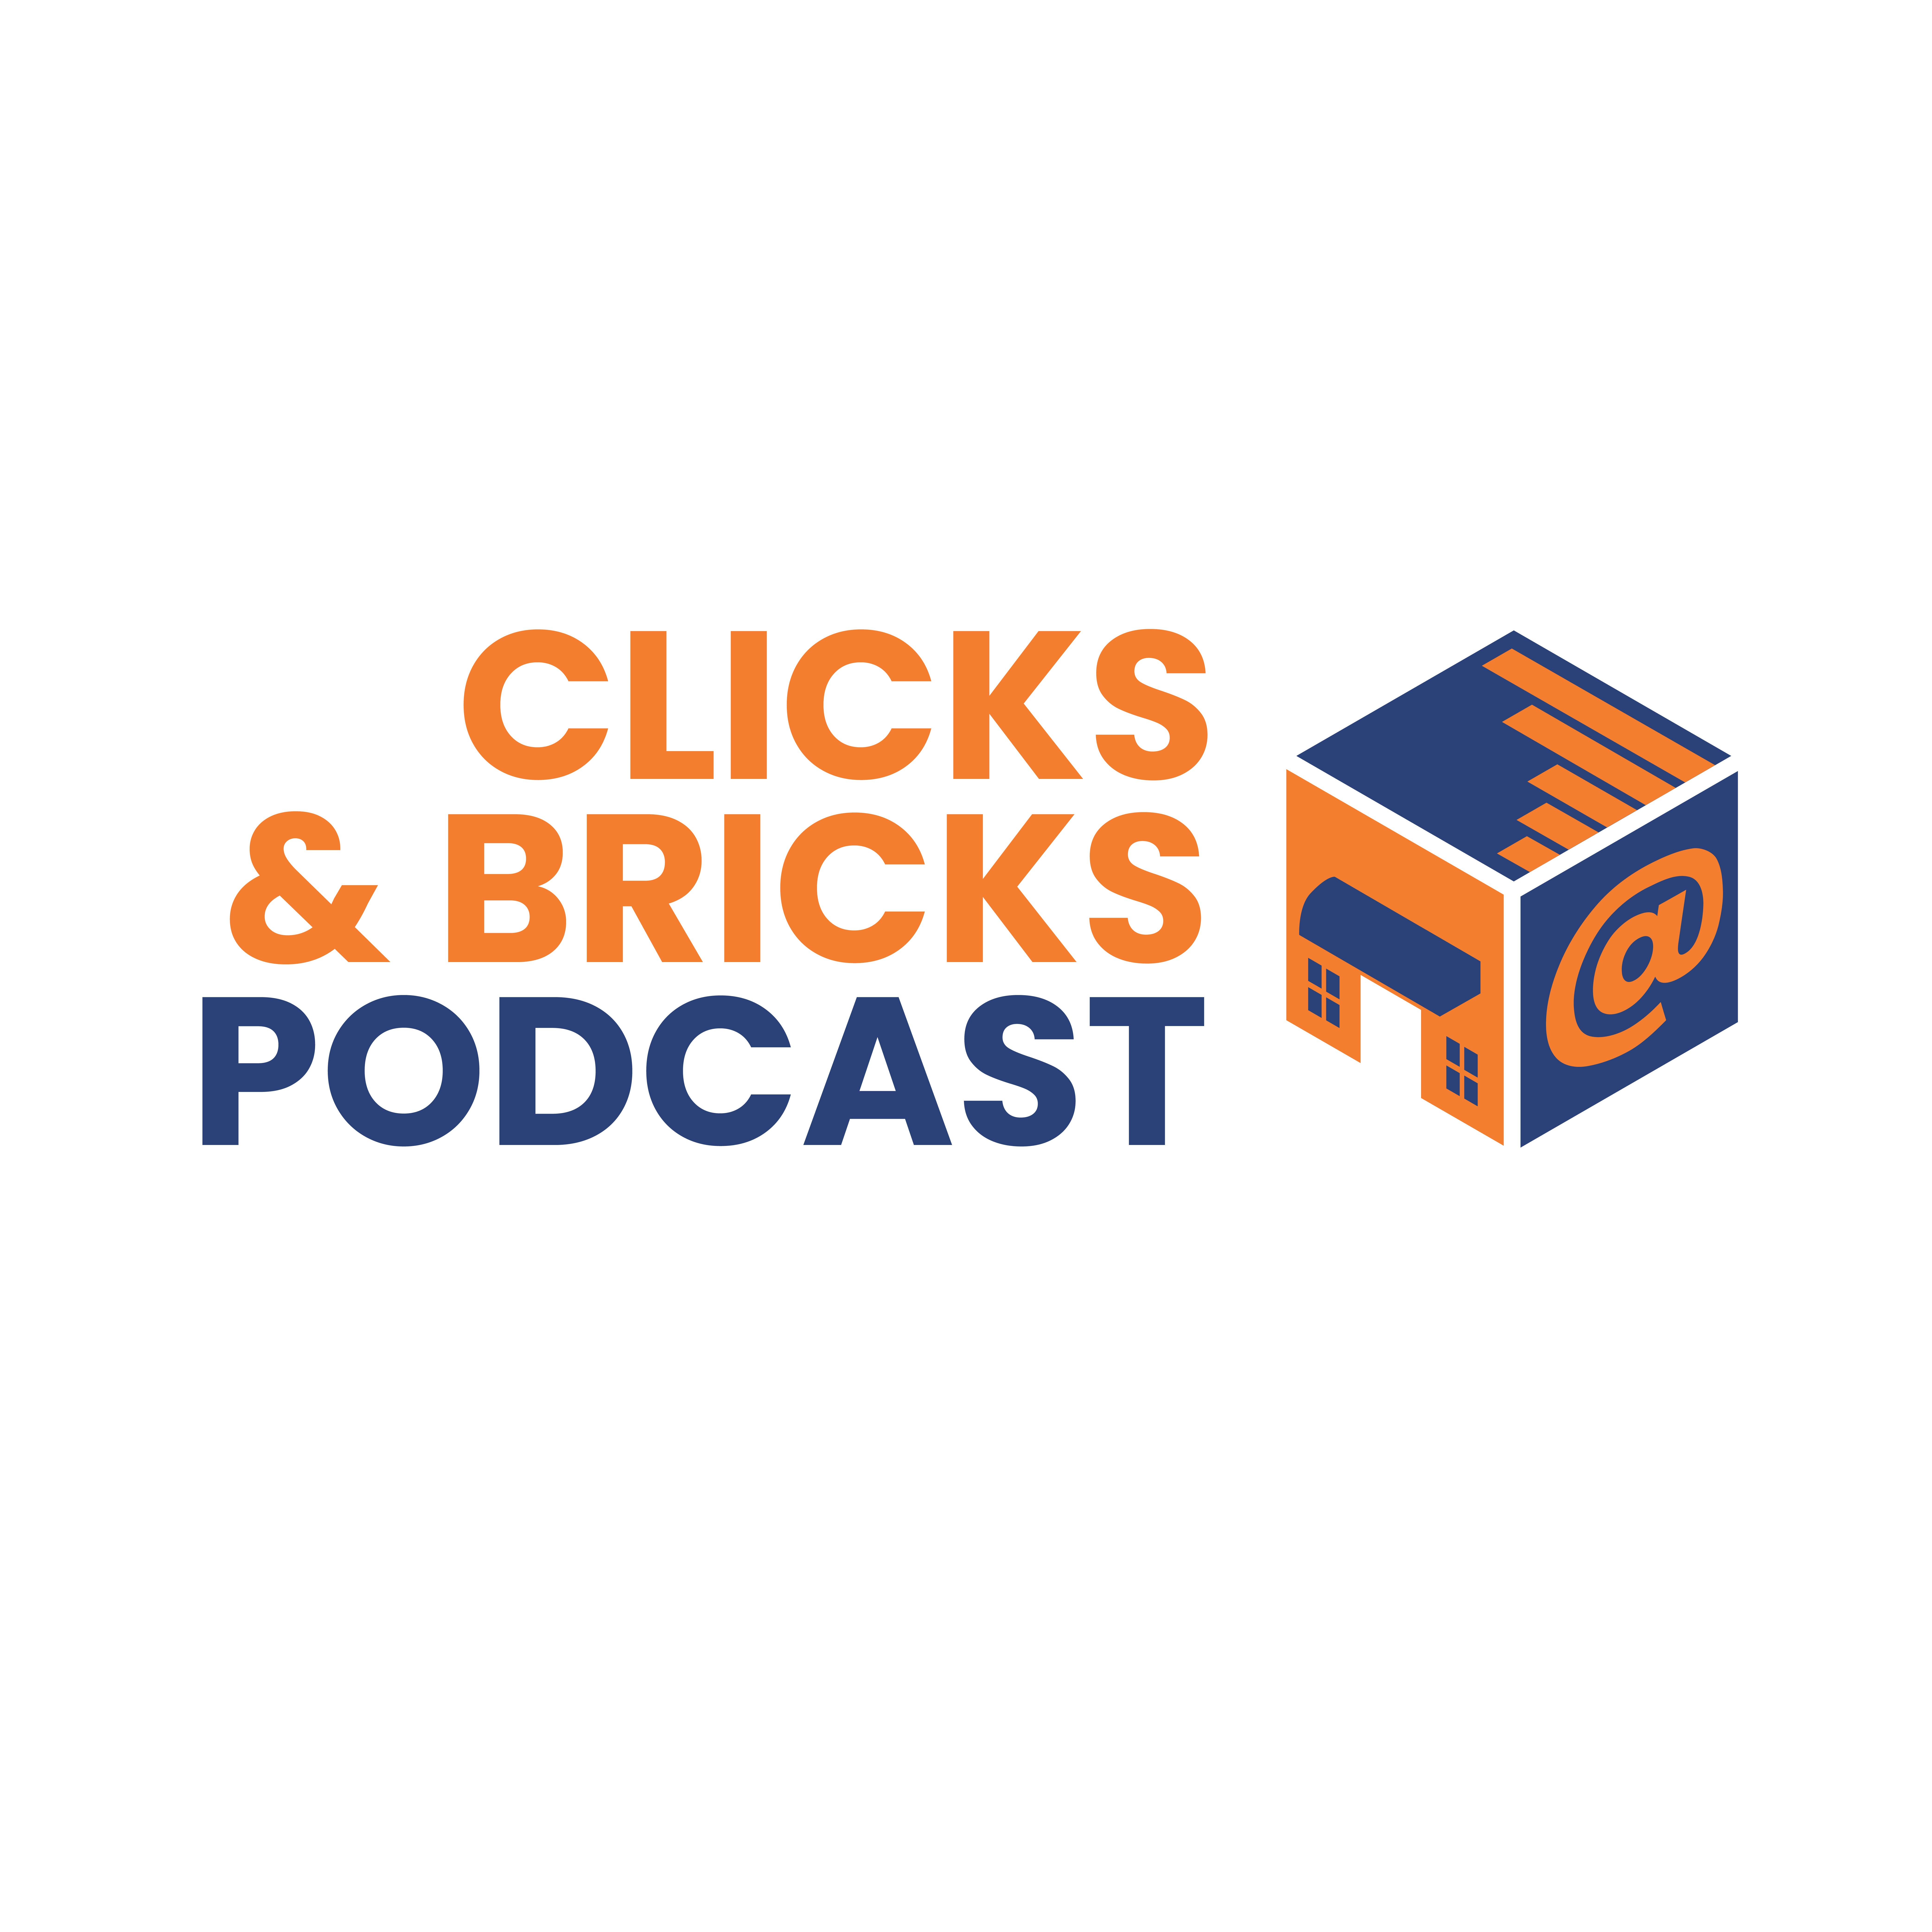 Clicks and Bricks Announces Interview with Dan Fradin of Impact Wraps